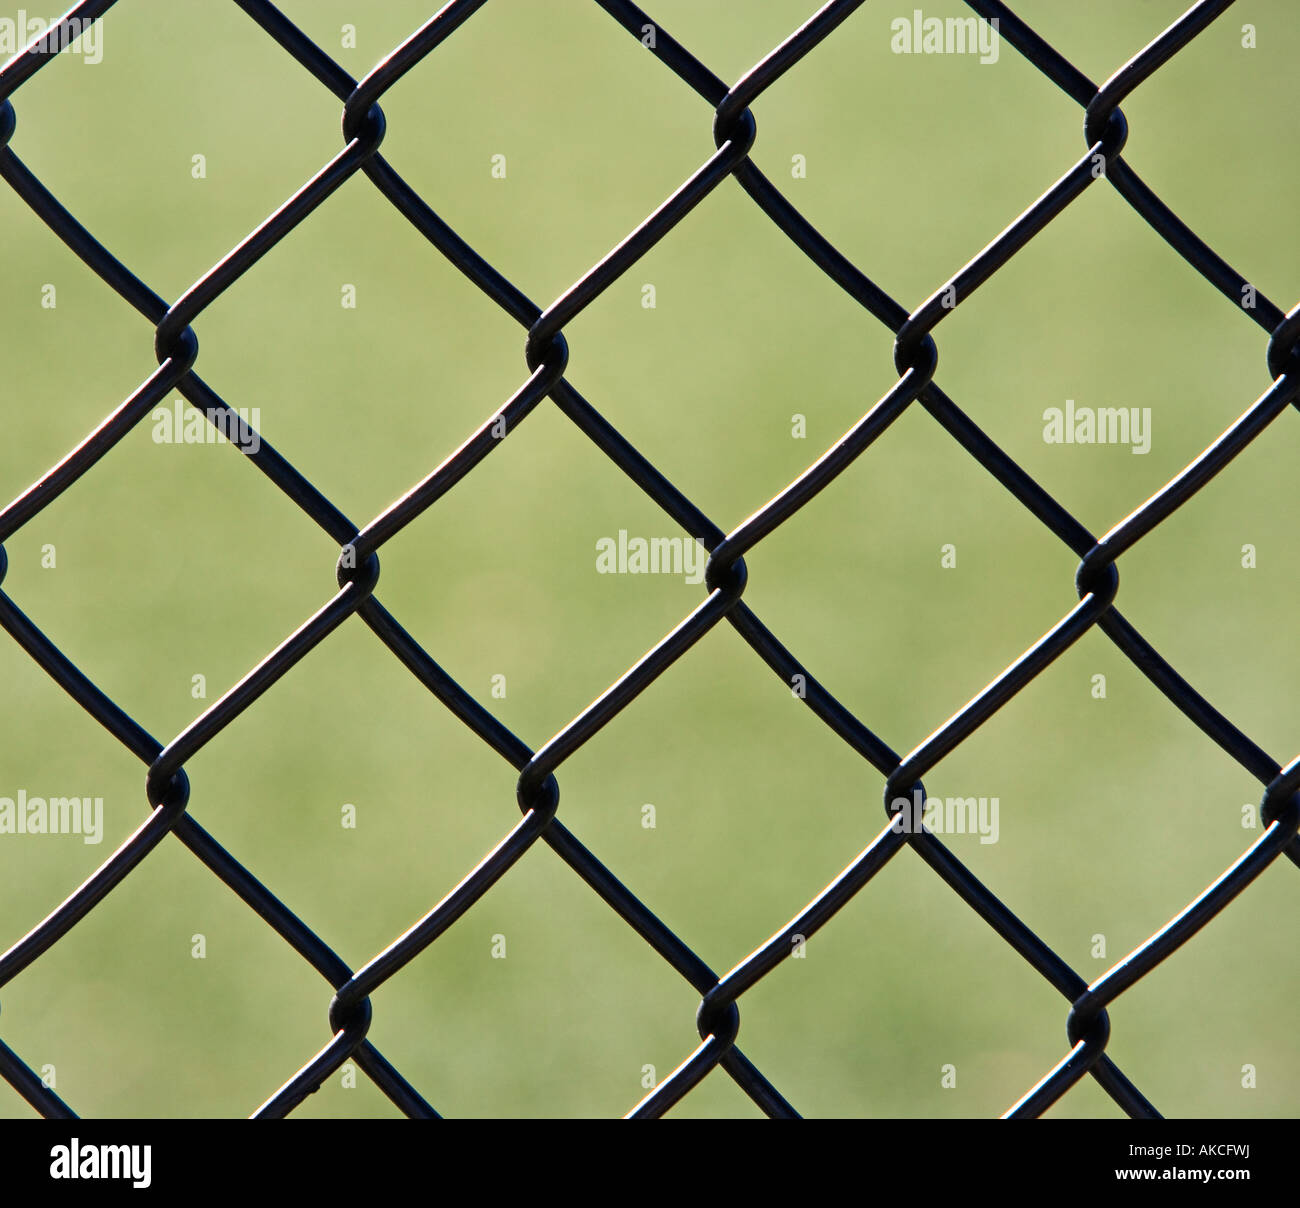 CHAIN-LINK FENCE, SQUARES, GRAPHICS - Stock Image